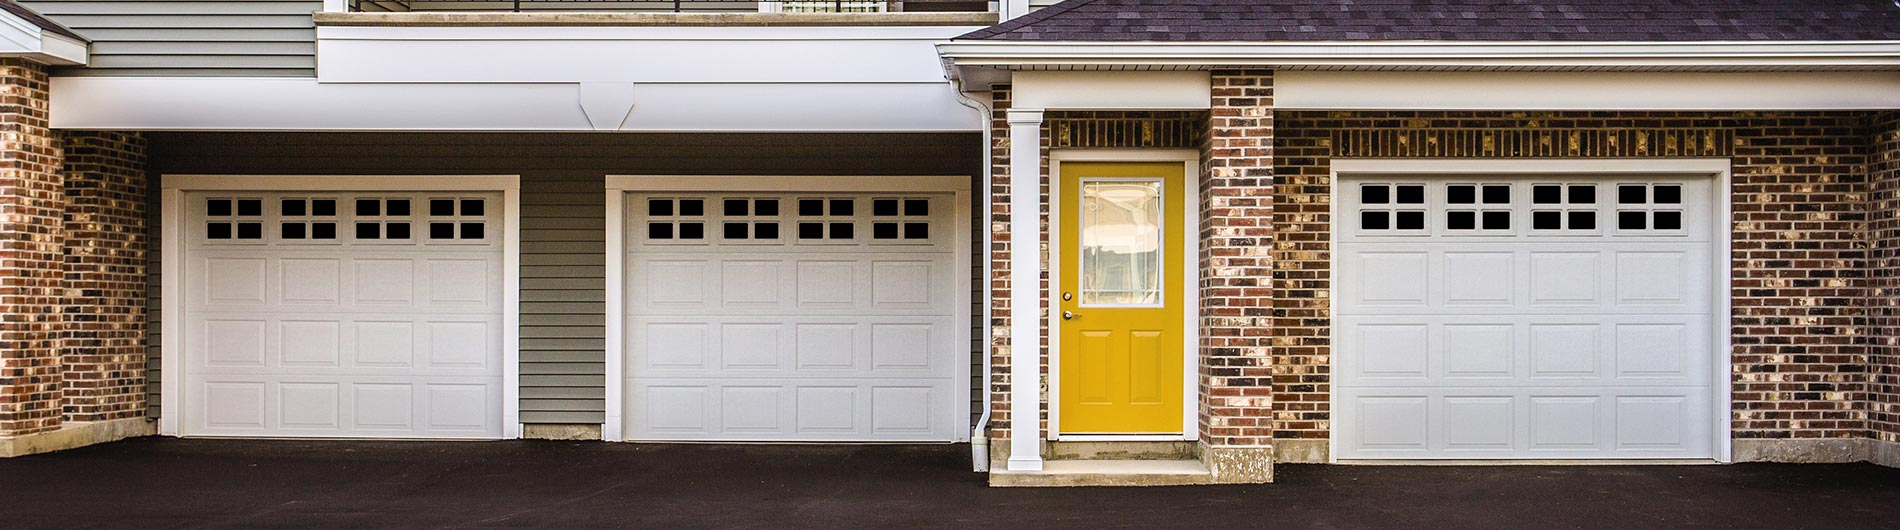 9100-9605-Steel-Garage-Door-Colonial-White-StockbridgeI ... : colonial doors - pezcame.com